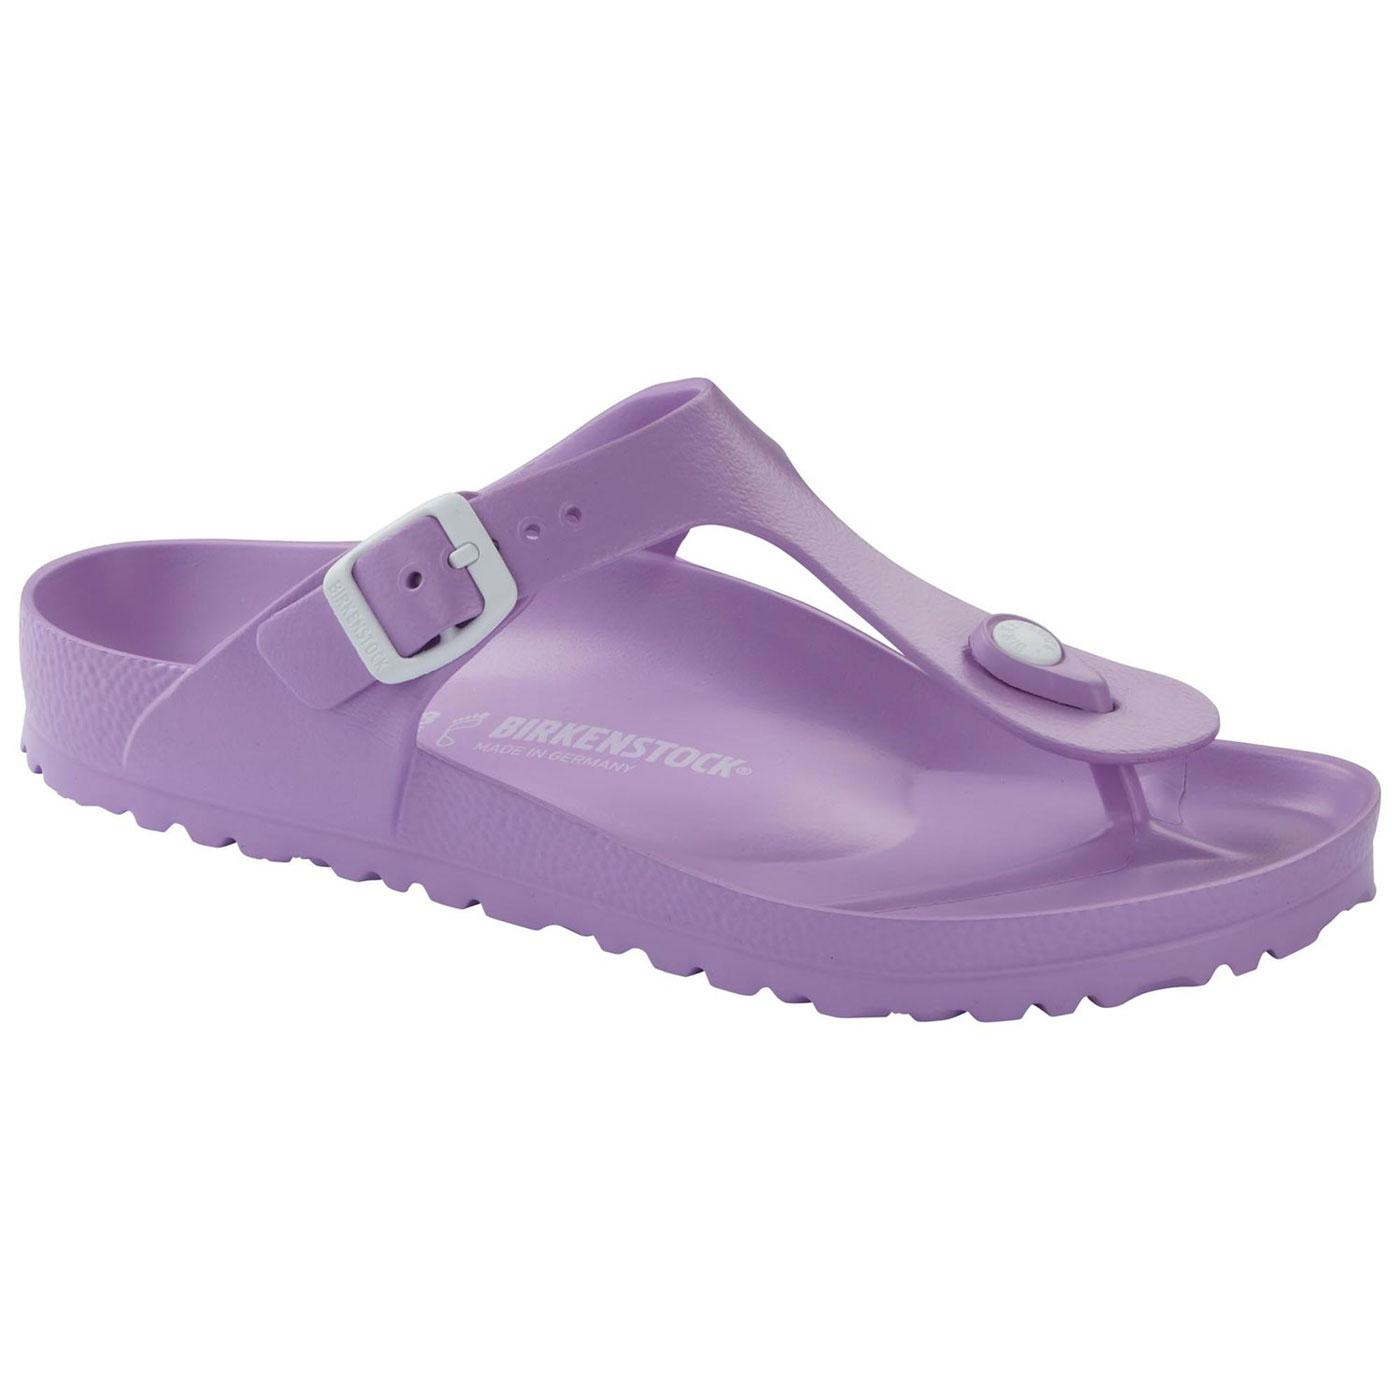 Gizeh EVA BIRKENSTOCK Waterproof Thong Sandals L